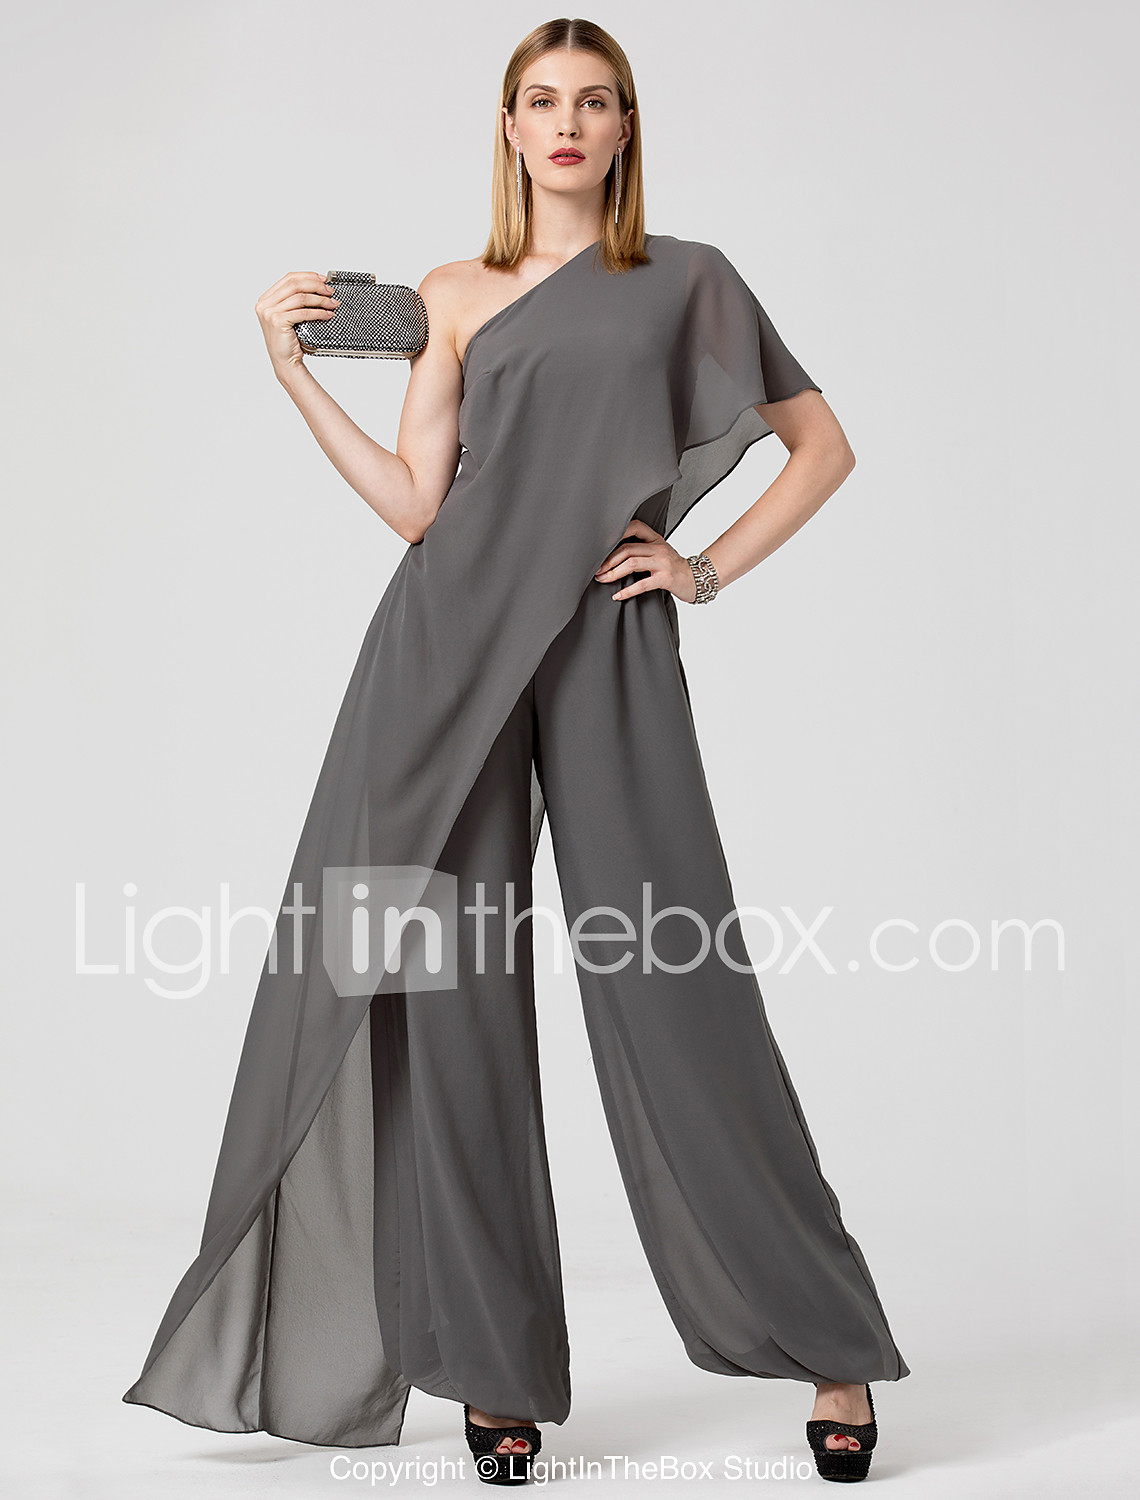 Marchesa Style Jumpsuit One Shoulder Floor Length Chiffon Formal Evening  Dress with Draping by TS Couture® c41b27fc7